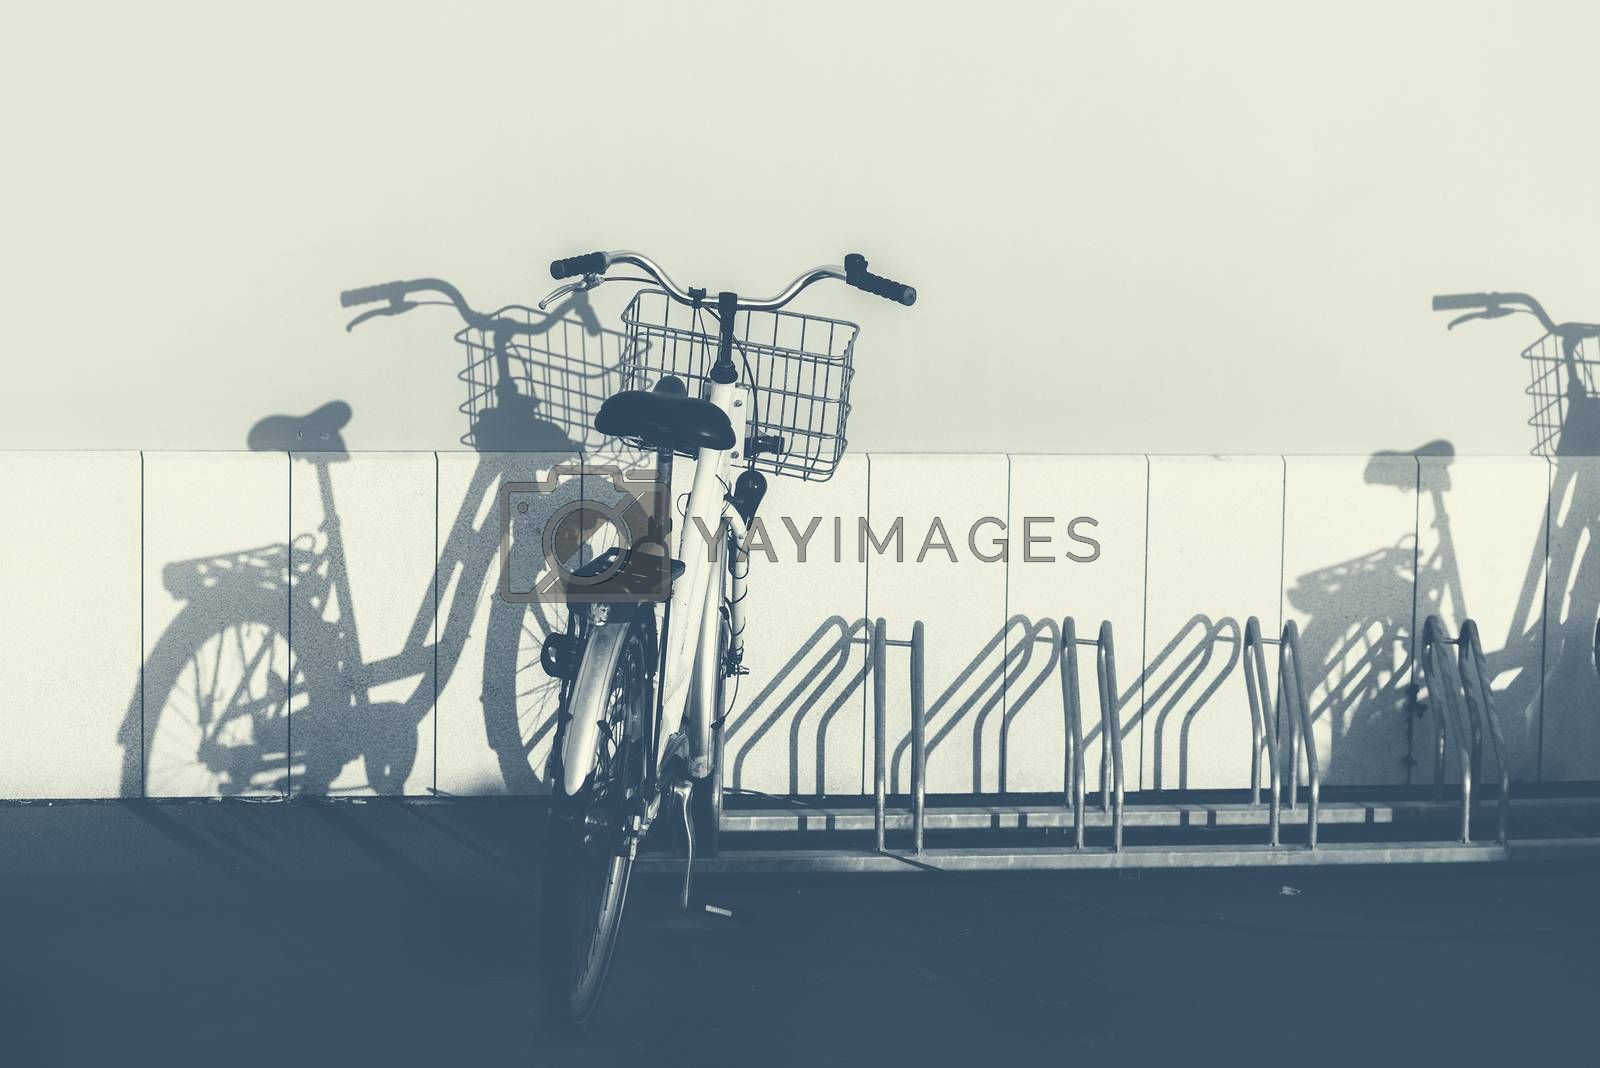 Bicycles and shadows, monochromatic image